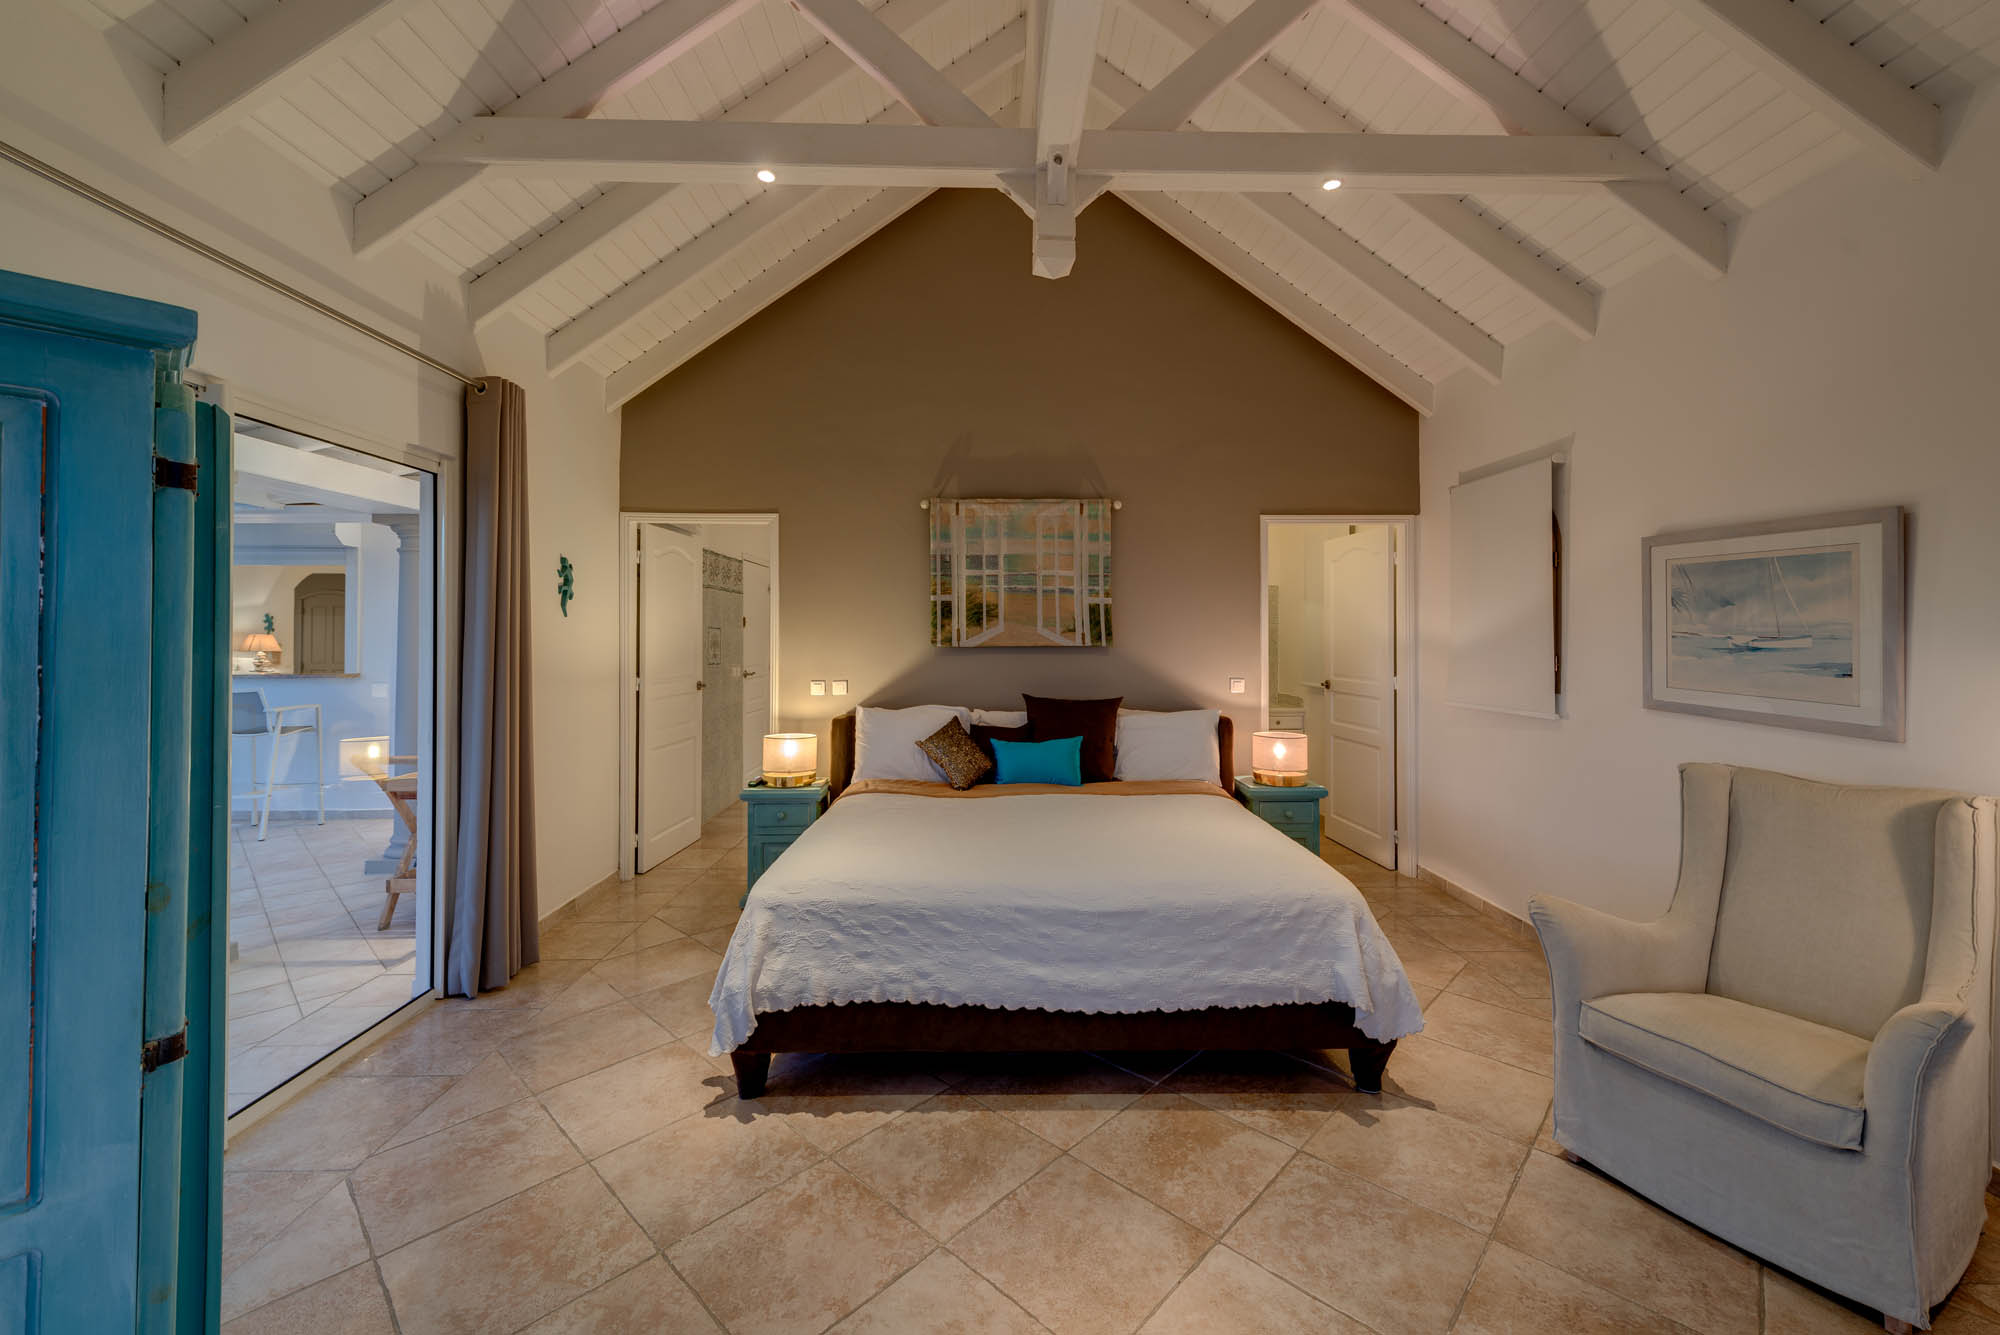 All bedrooms feature king size beds, private bathrooms with showers, air conditioning, ceiling fans, plasma TV and DVD.